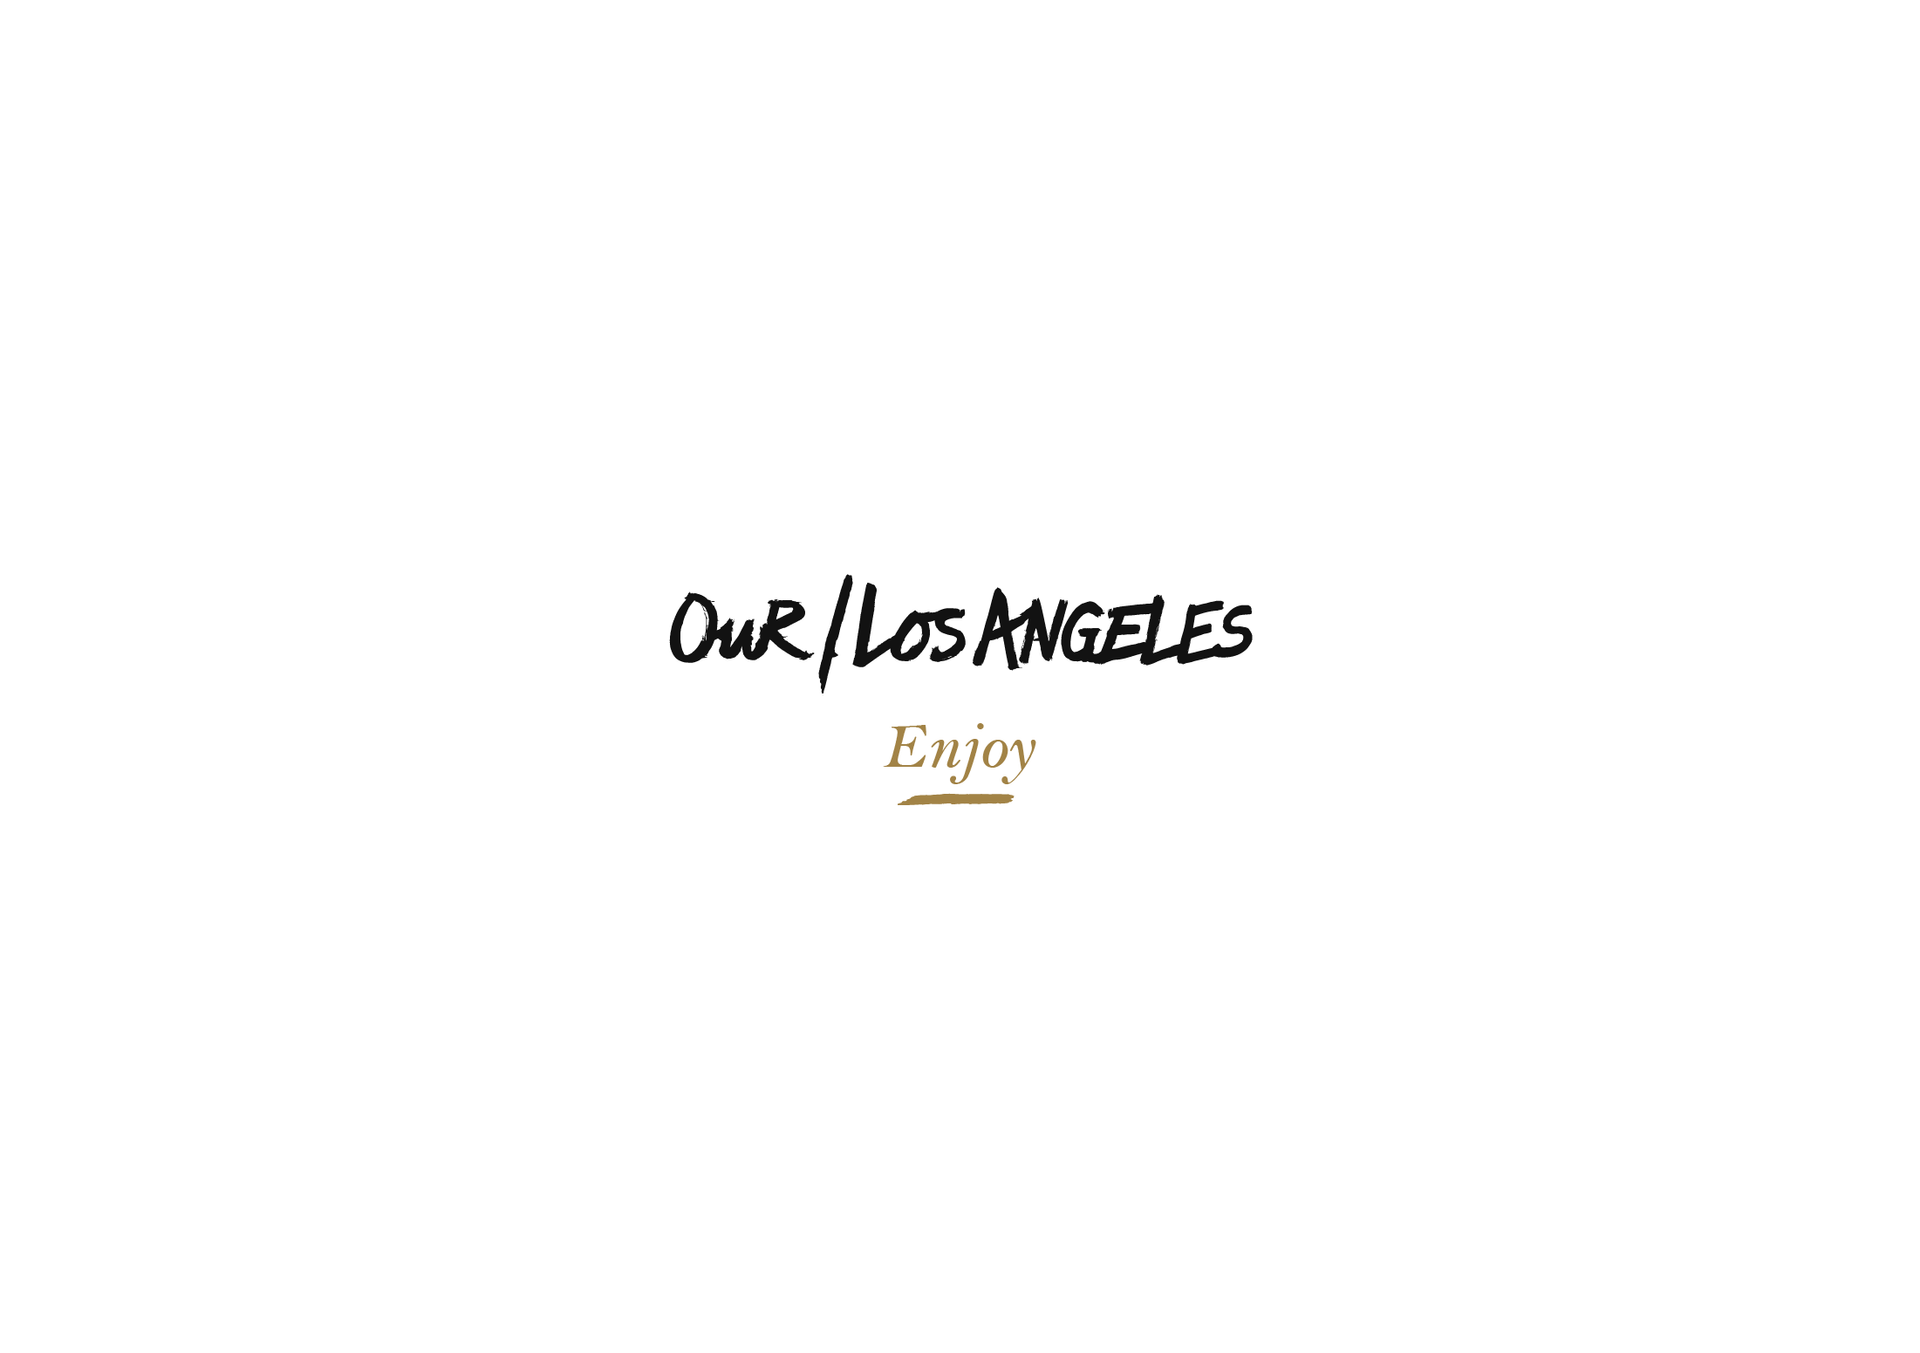 Our Los Angeles Brand Book 0319-12.png